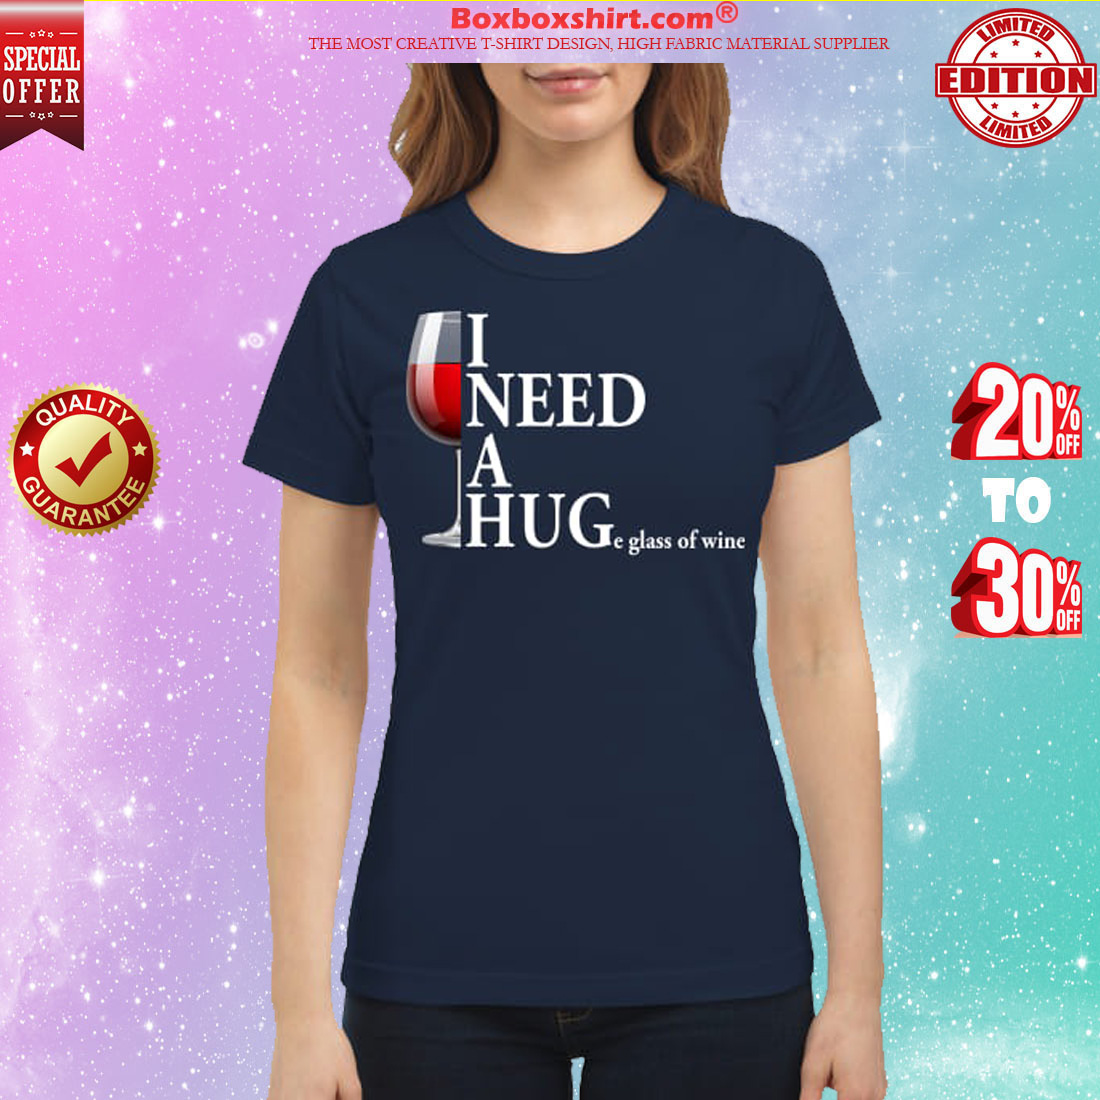 I need a huge glass of wine classic shirt